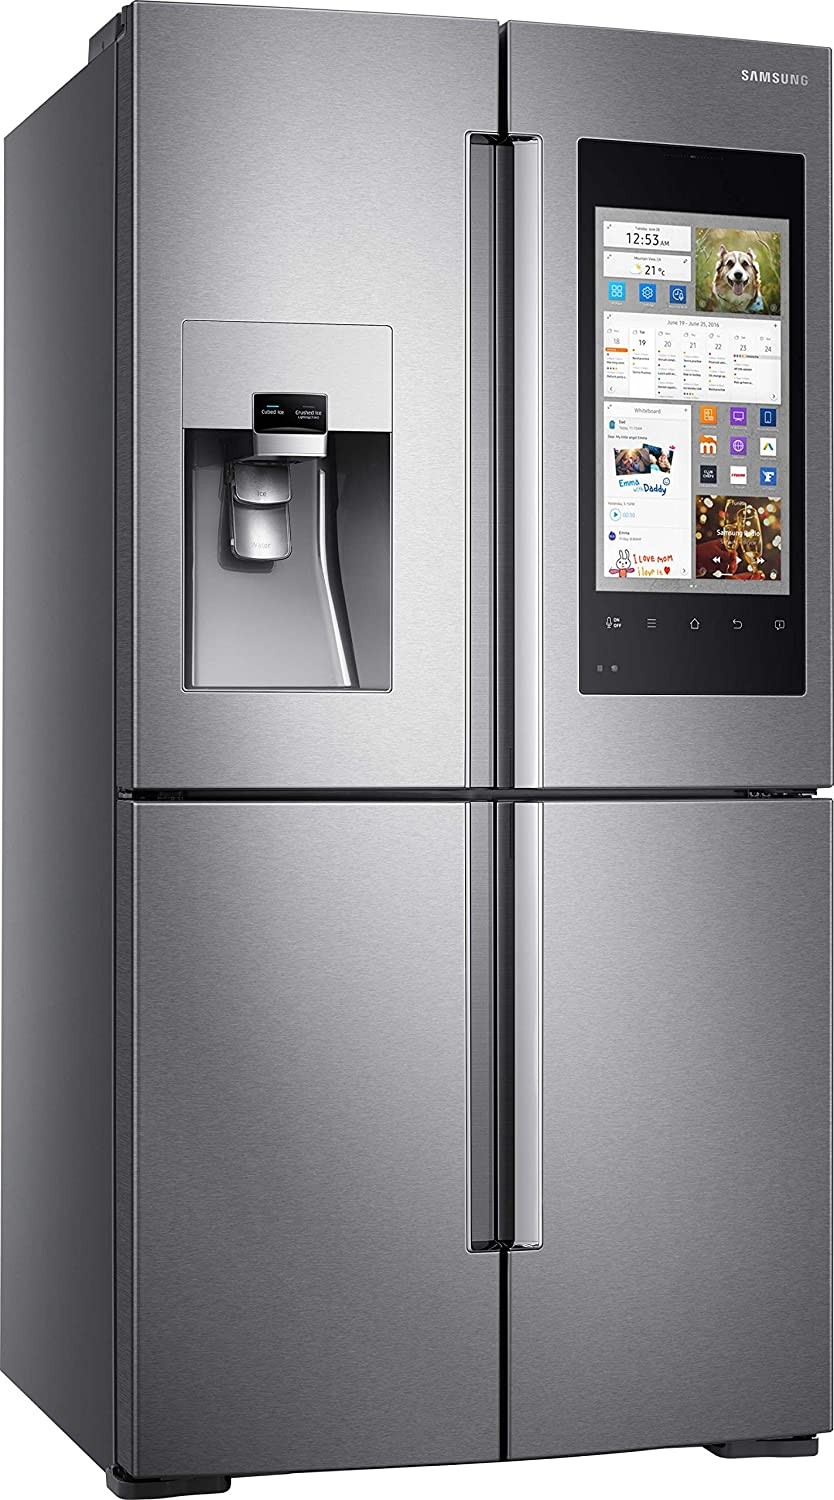 Samsung RF56M9540SR Built-in 550L A+ Stainless steel side-by-side refrigerator - Side-By-Side Fridge-Freezers (Built-in, Stainless steel, French door, LED, Door-on-door, Touch) RF56M9540SR/EF